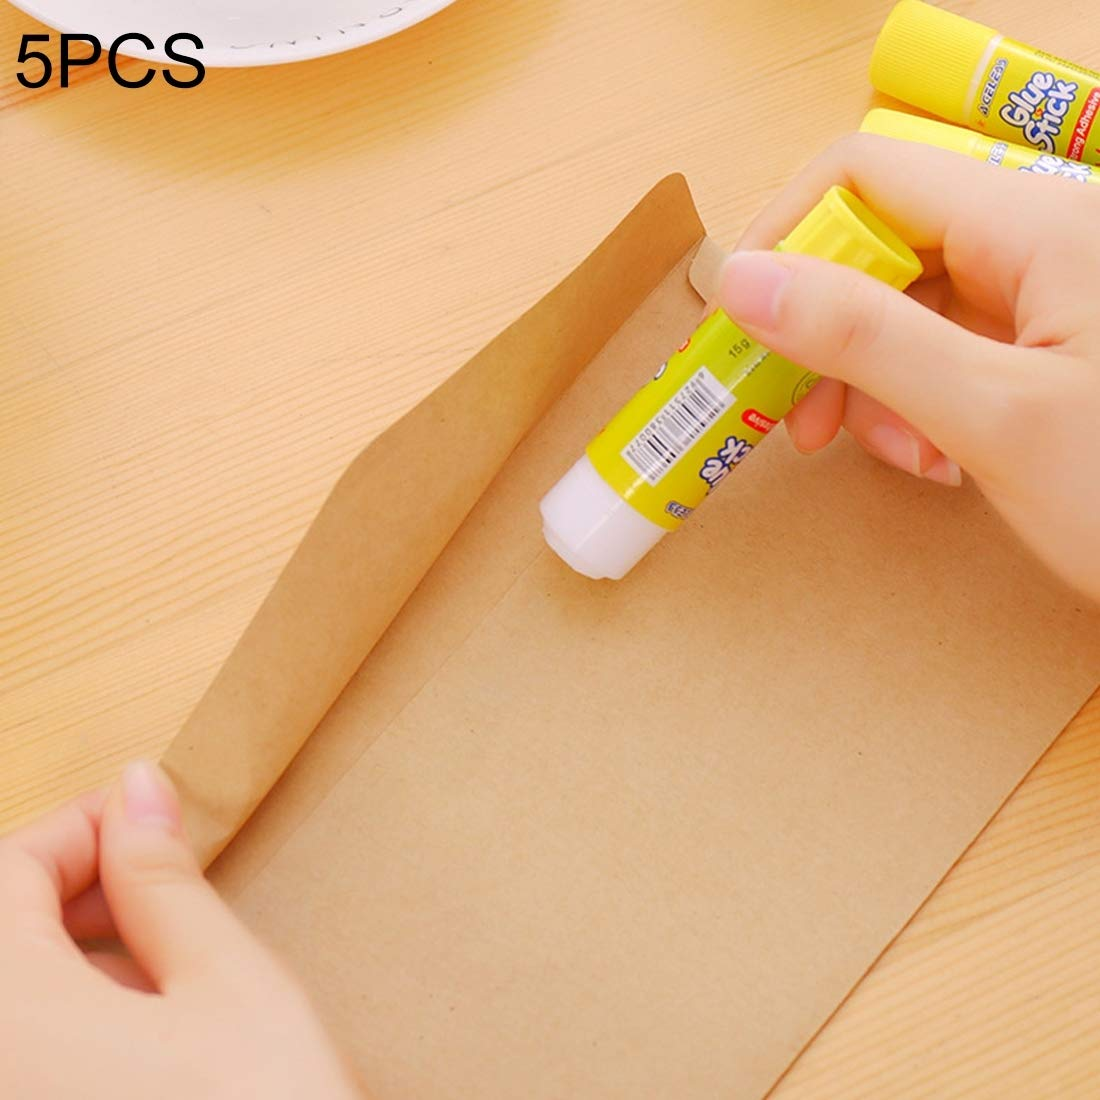 Gulakey Big Sizing: 91 x 21mm, 5 PCS Non-Toxic Substantial Adhesion Solid Glue Stick Highschool Viscosity DIY Hand Made Work Glue Trend Stationery by Gulakey